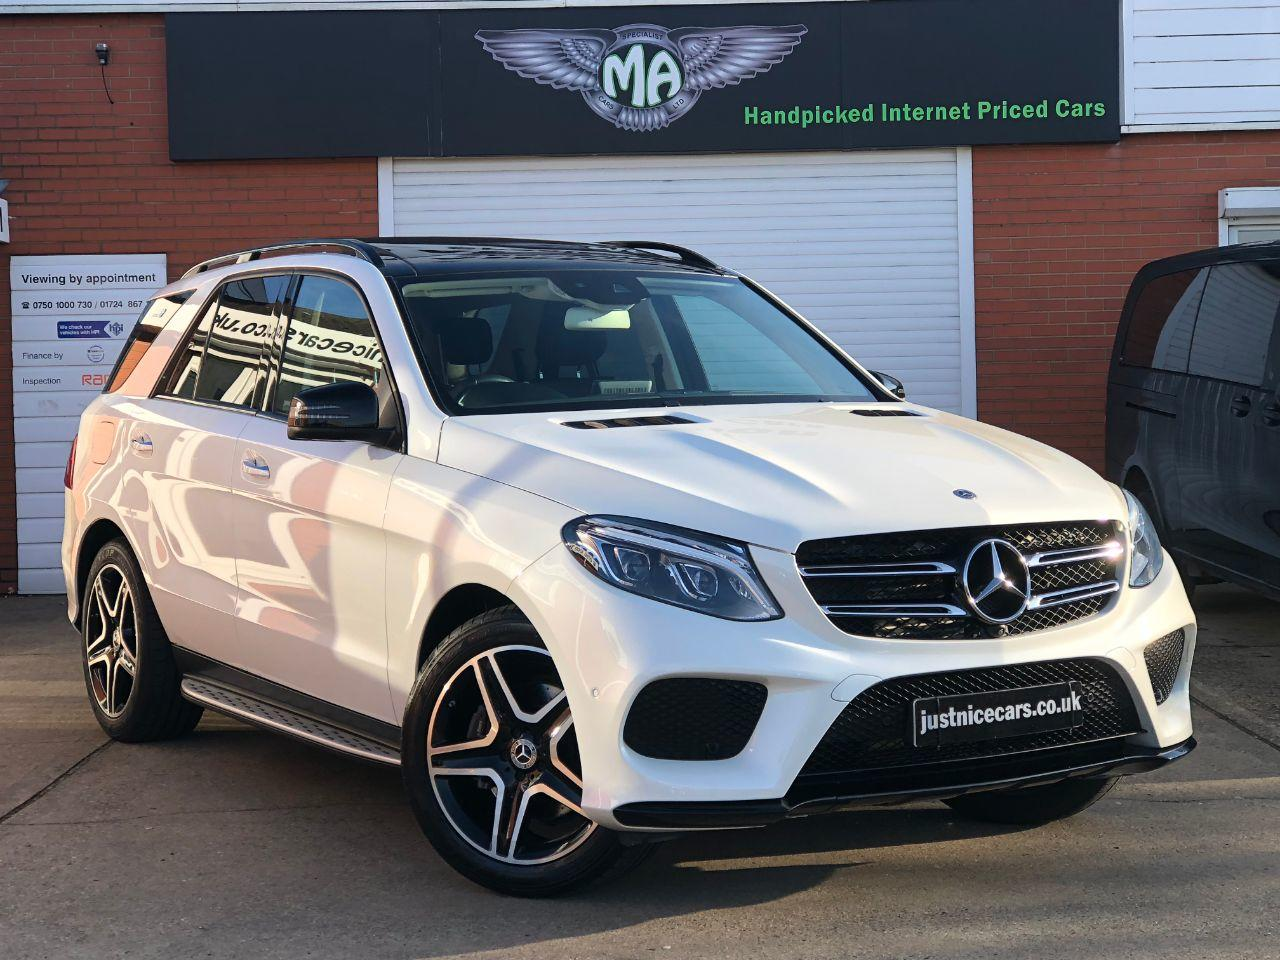 Mercedes-Benz GLE GLE350d 3.0 V6 AMG Line Premium Plus 4Matic 9G-Tronic Automatic Estate Diesel Designo Diamond White Metallic